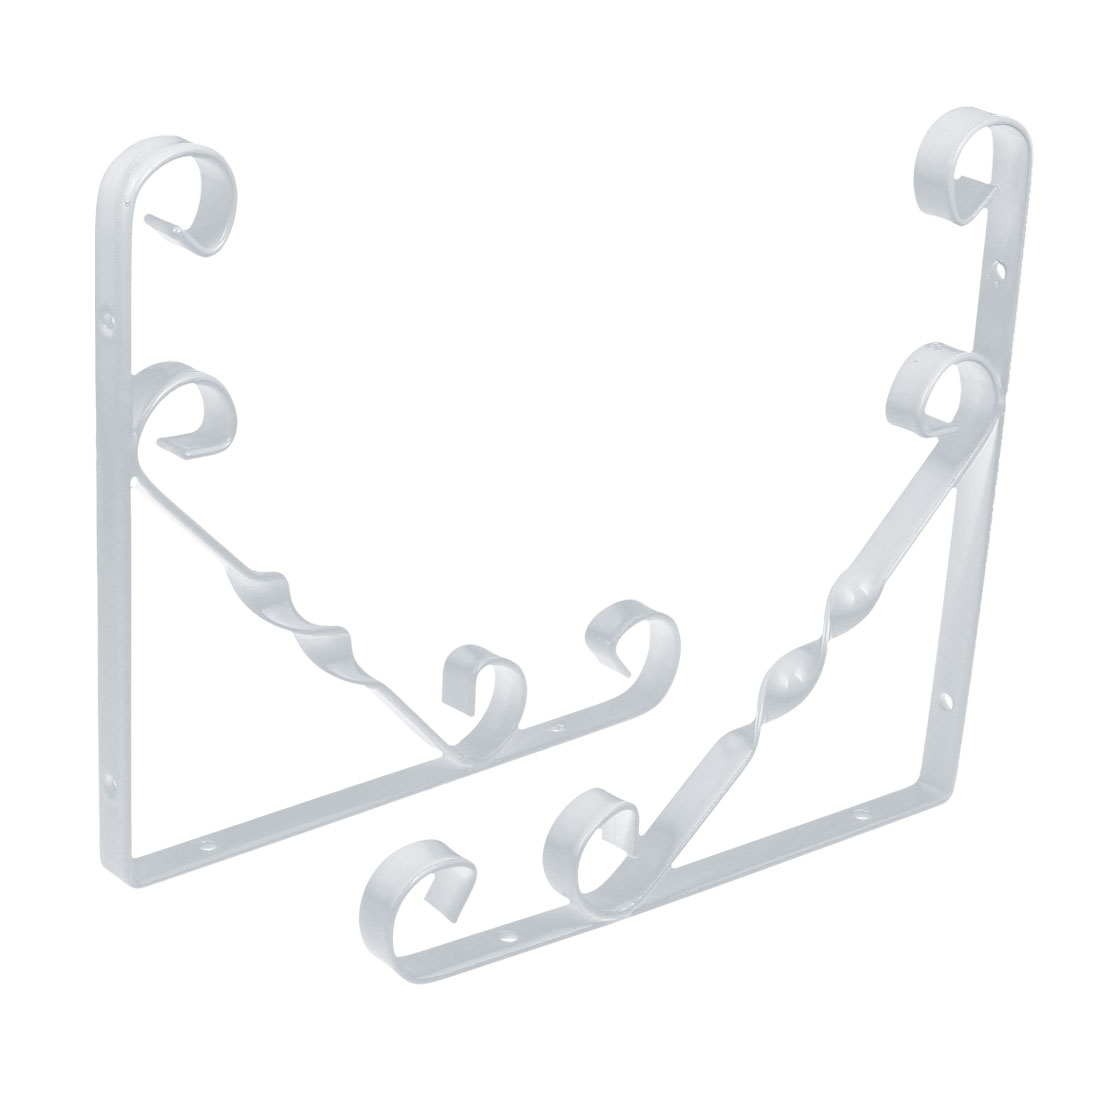 Home Shop Wall Mounted Metal L Shaped Shelf Bracket Support Holder White 200x200mm 2pcs